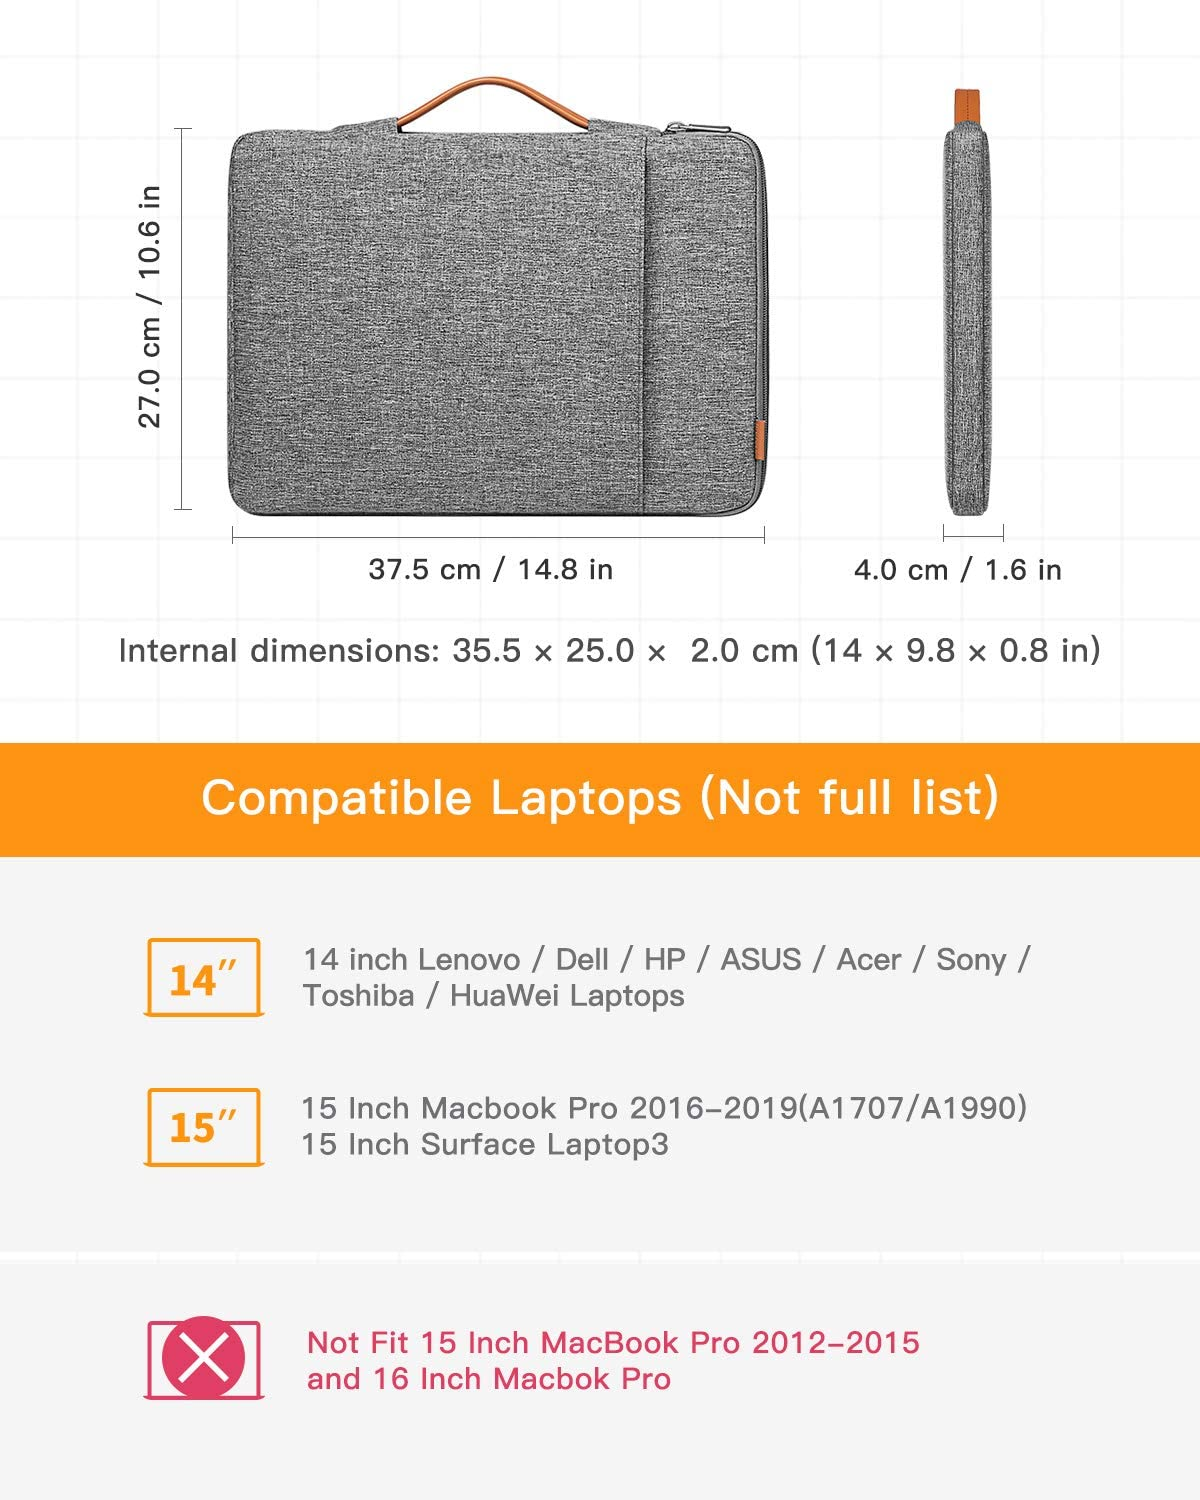 Inateck 14 Inch 360 Protection Shockproof Laptop Sleeve Carrying Case LB02006-14, Gray